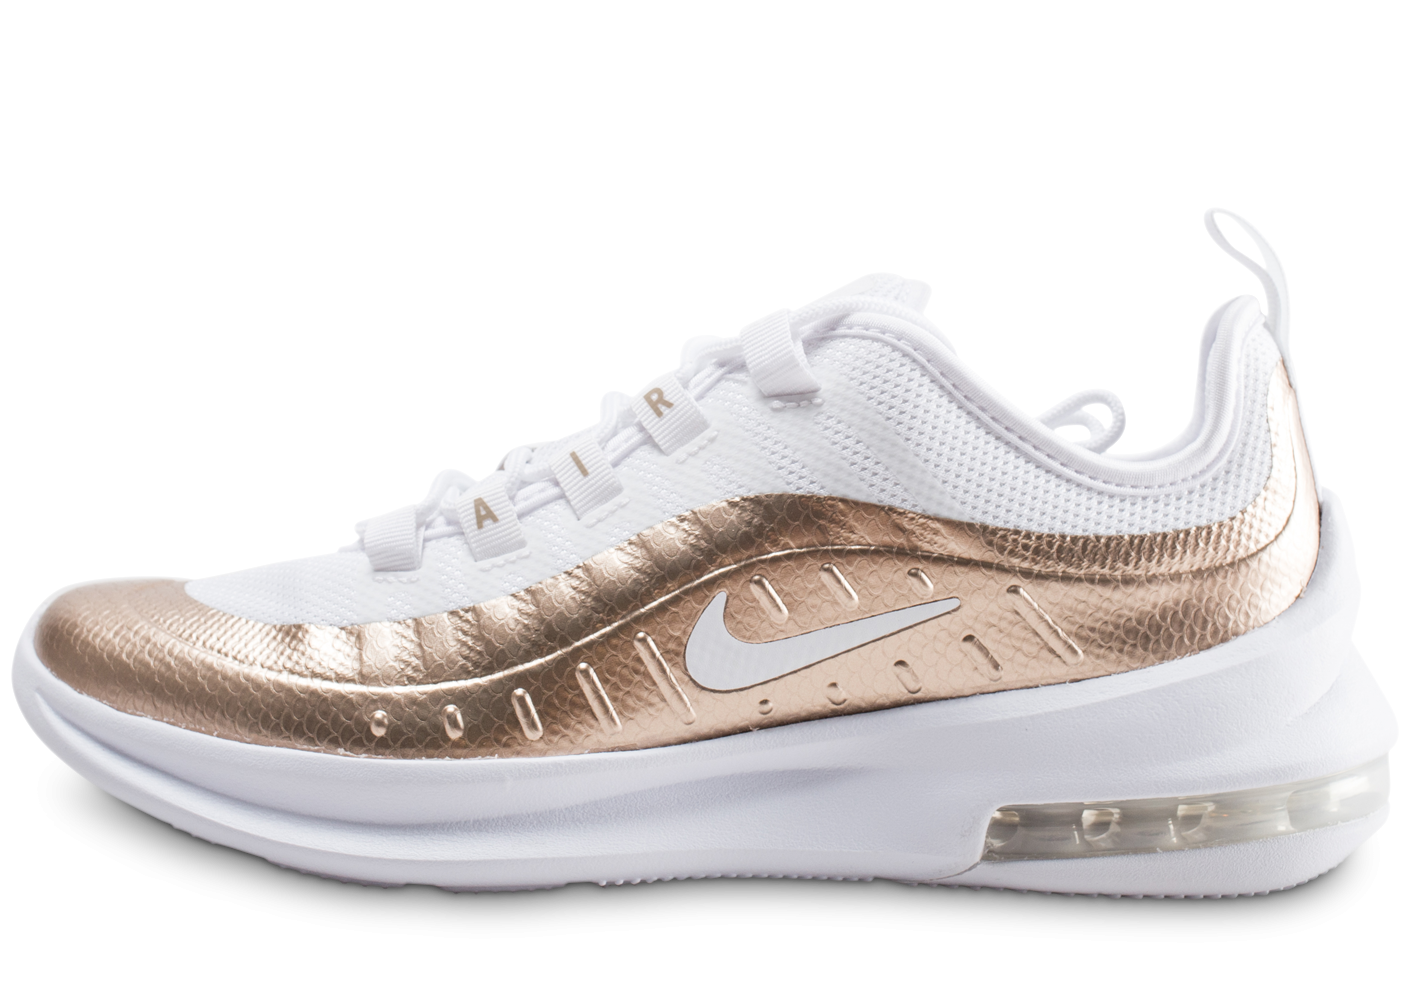 Nike Air Max Axis blanche et or junior